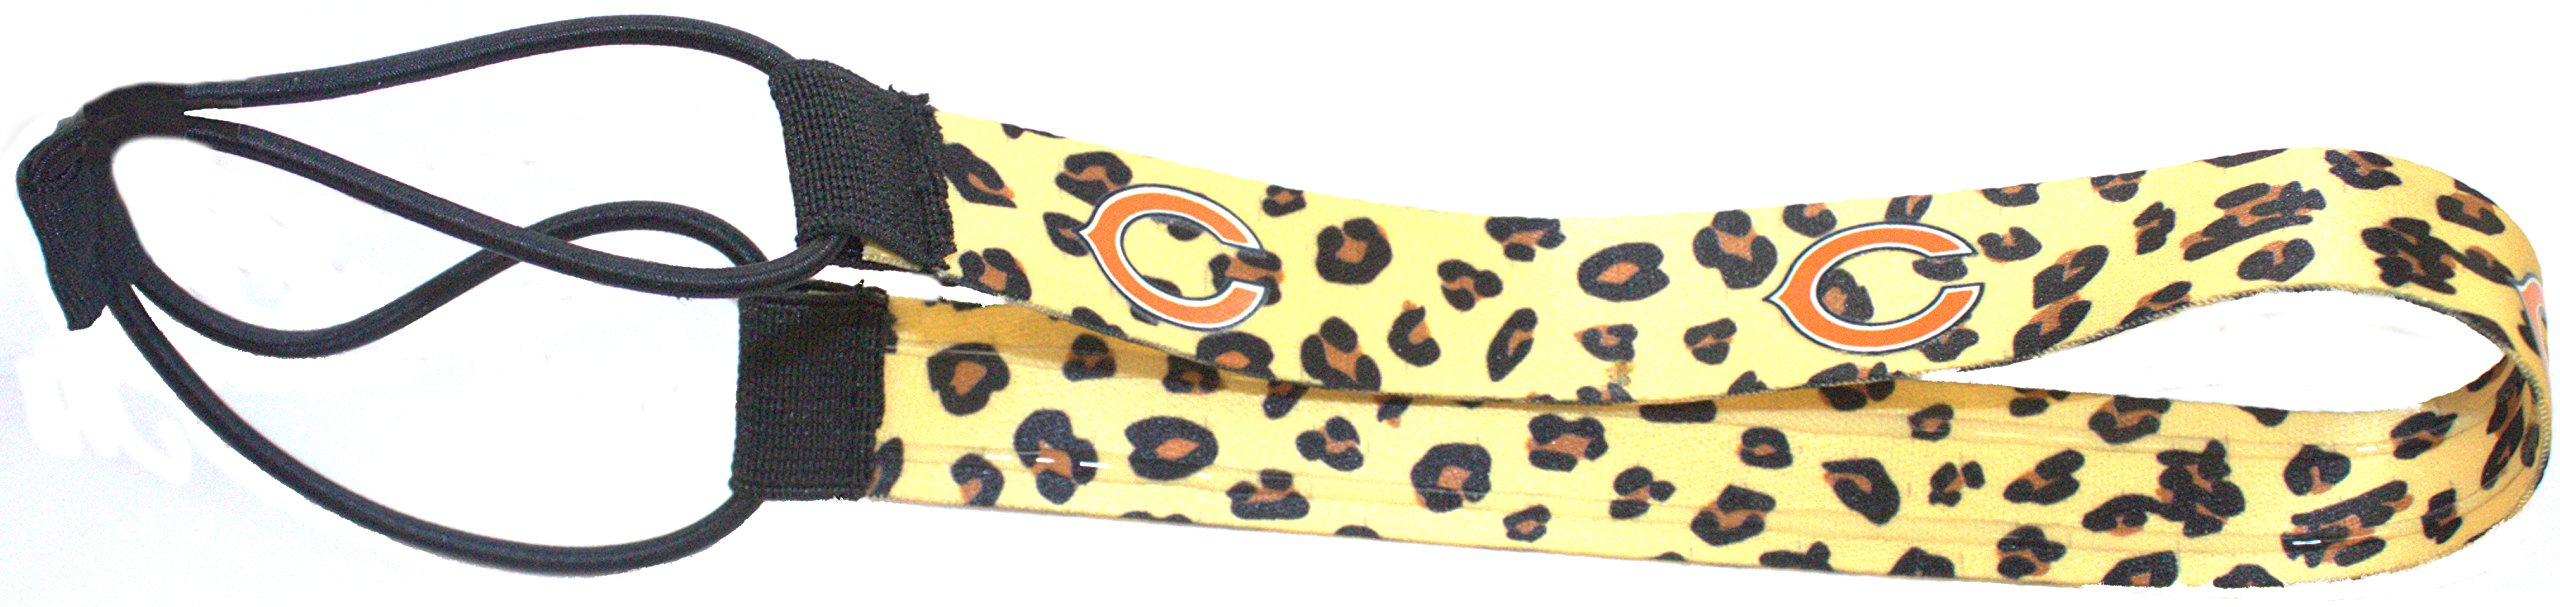 NFL Officially Licensed Chicago Bears Leopard Spots Headband